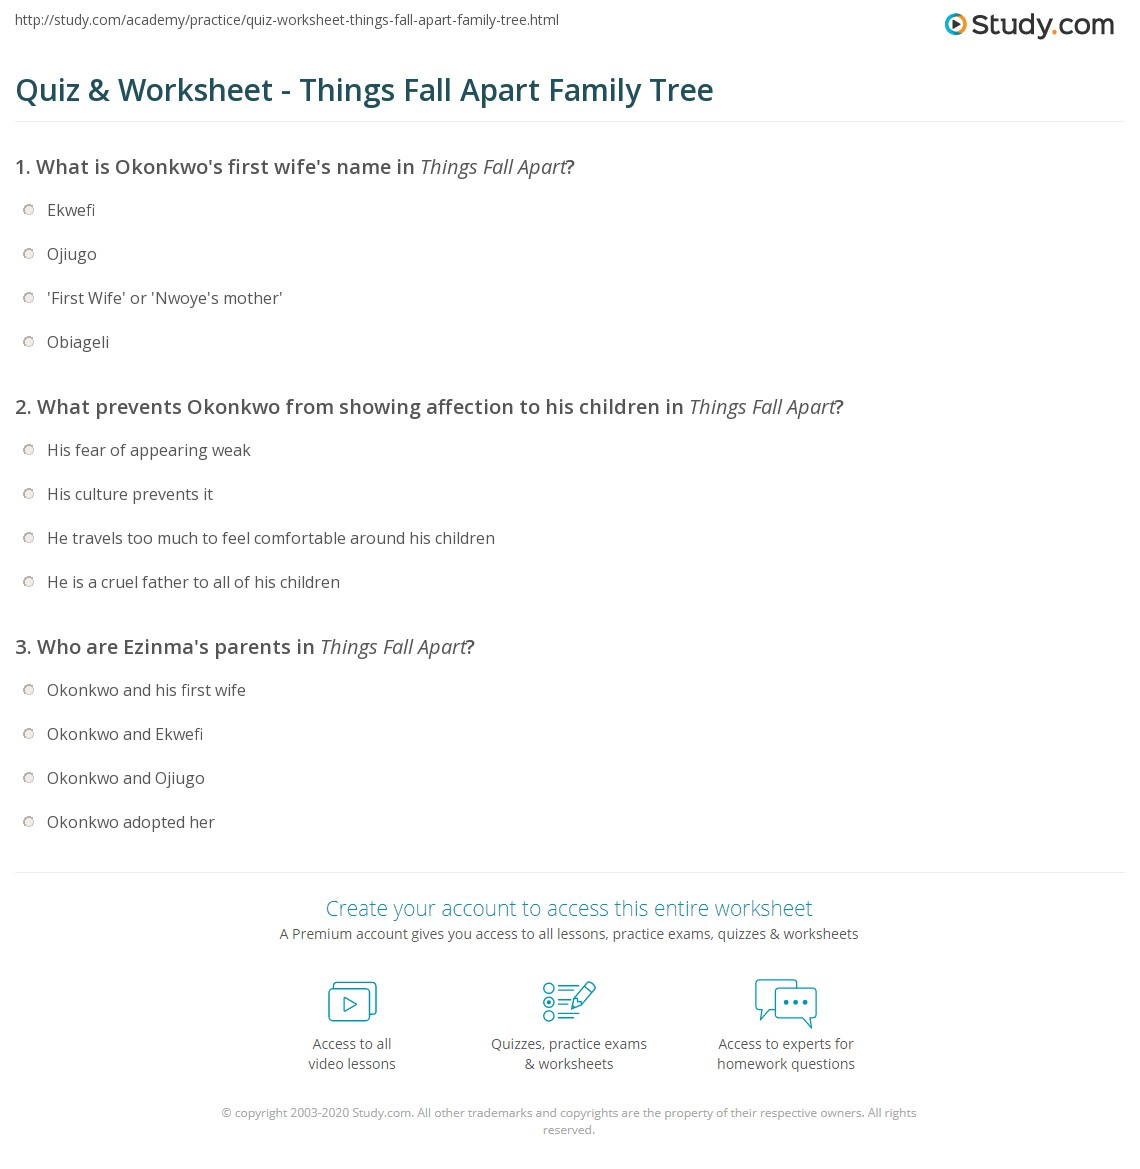 essay things fall apart okonkwo family tree